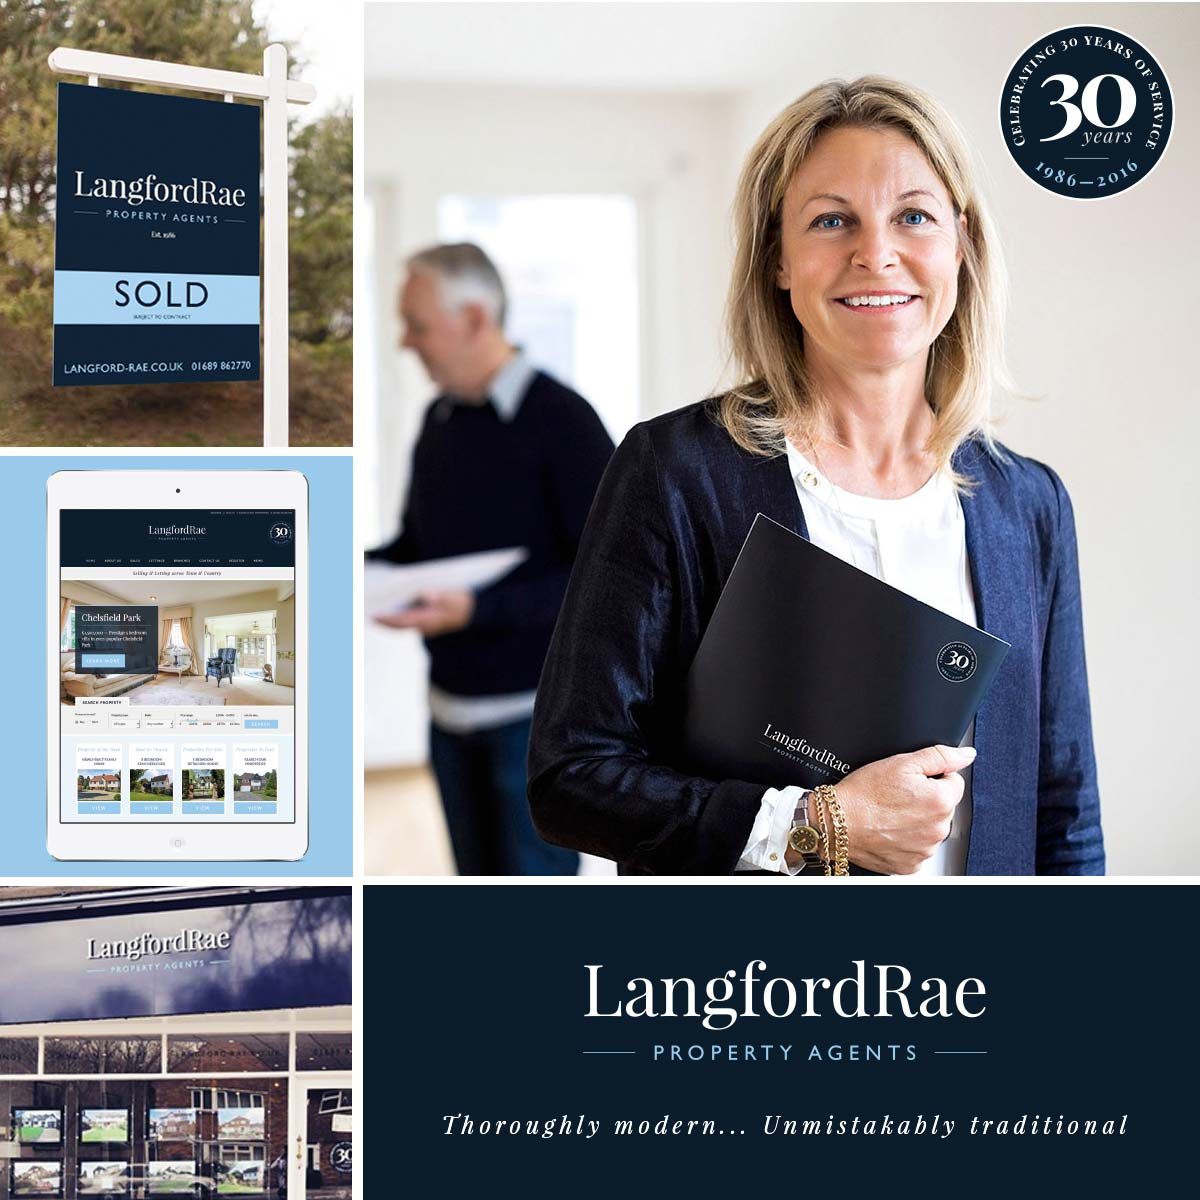 LangfordRae undergoes a rebrand in 2016, its 30-year anniversary year